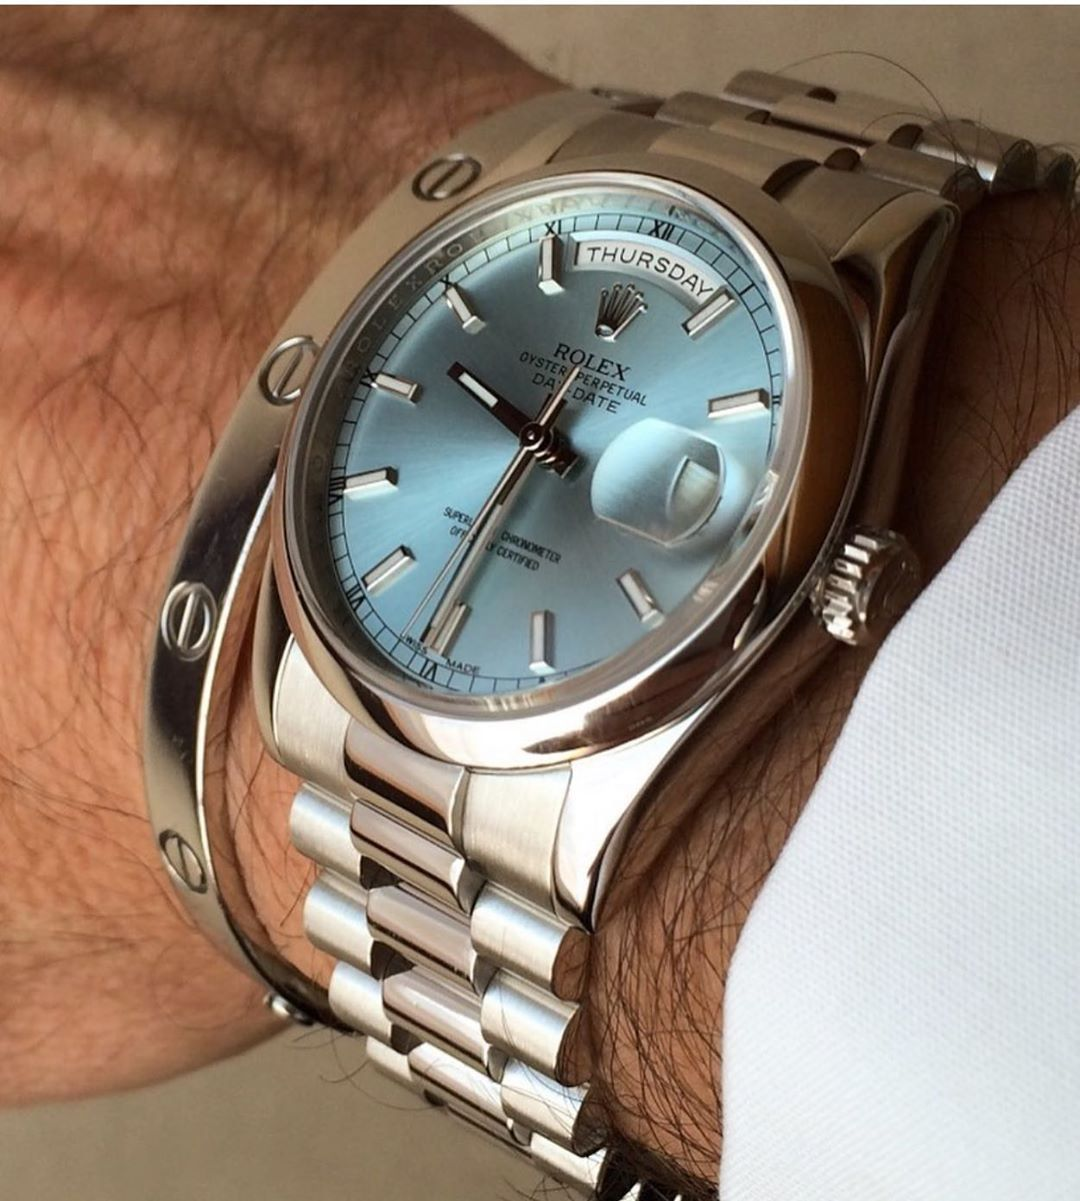 Daily Watch Posts On Instagram My Favourite Daydate The Platinum 118206 With Ice Blue Dial In 2020 Vintage Watches For Men Rolex Luxury Watches For Men